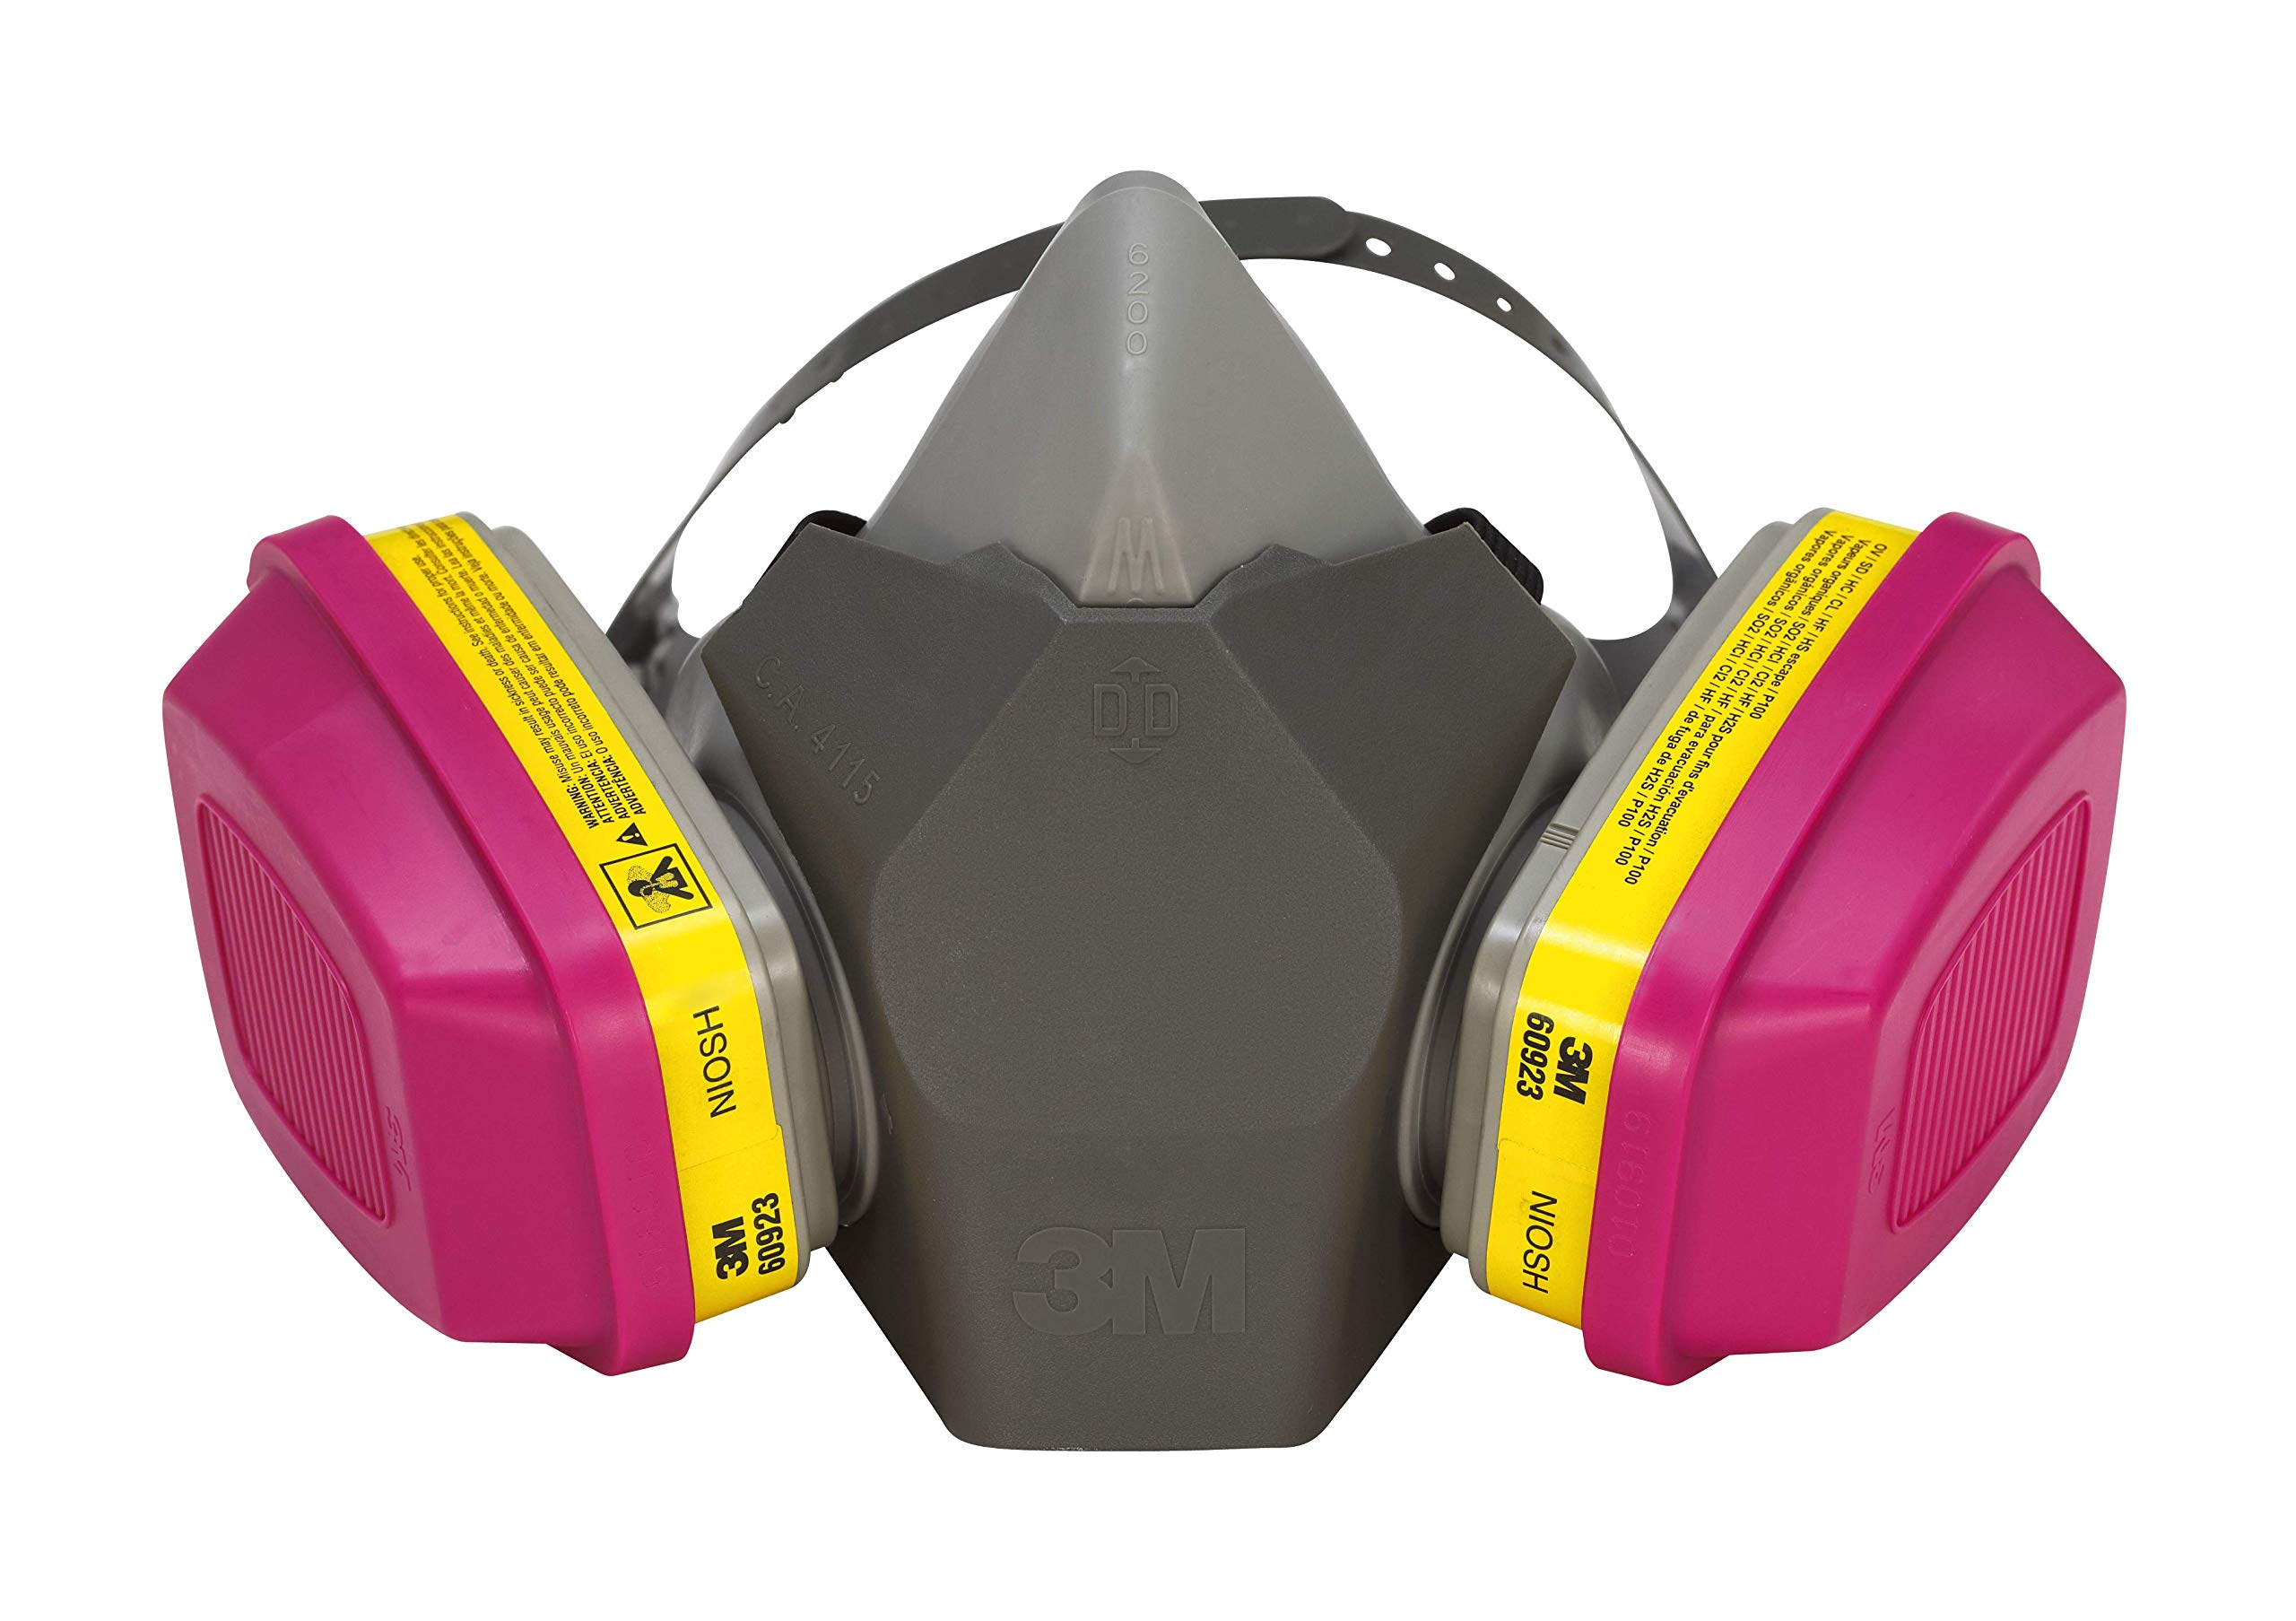 3M 62023DHA1-C Professional Multi-Purpose Drop Down Respirator, Medium by 3M Safety